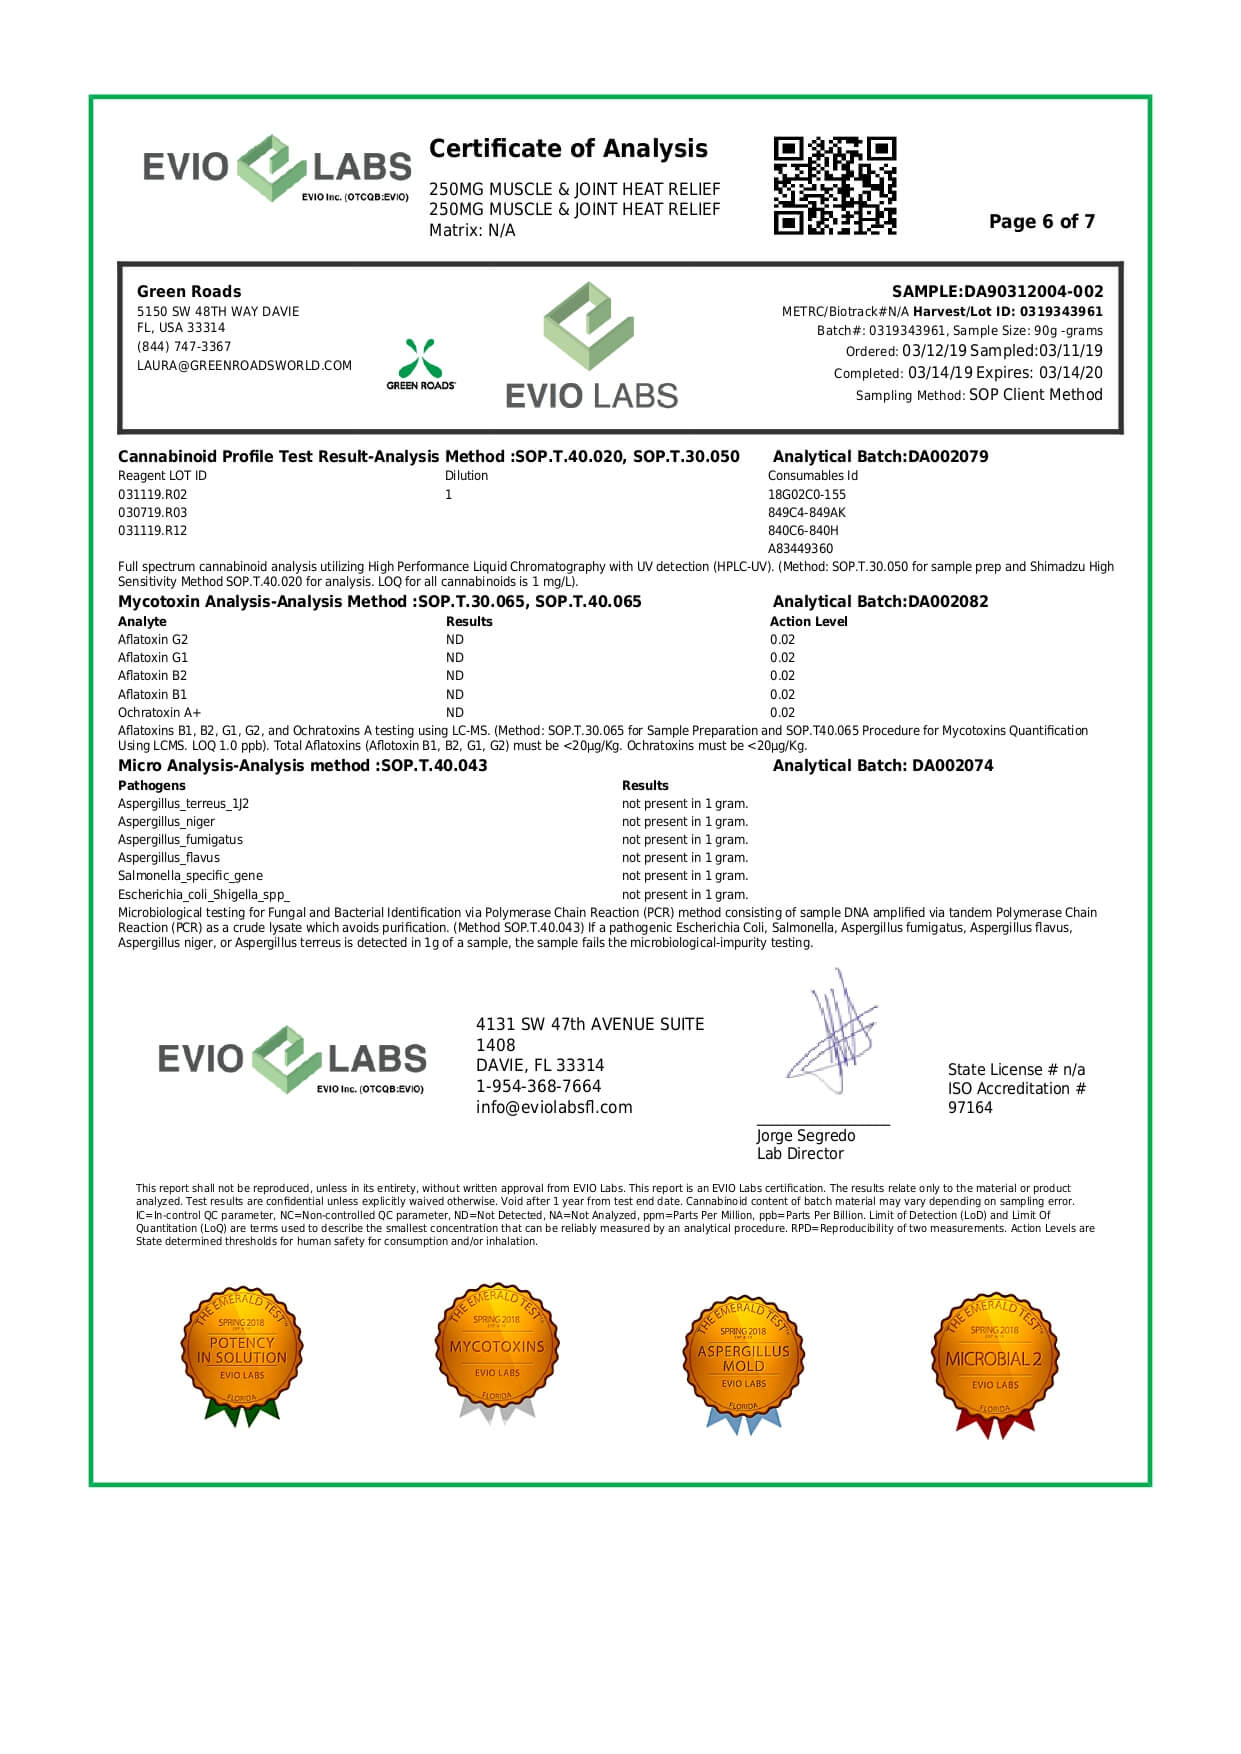 Green Roads CBD Topical Muscle & Joint Heat Relief Roll-On 250mg Lab Report